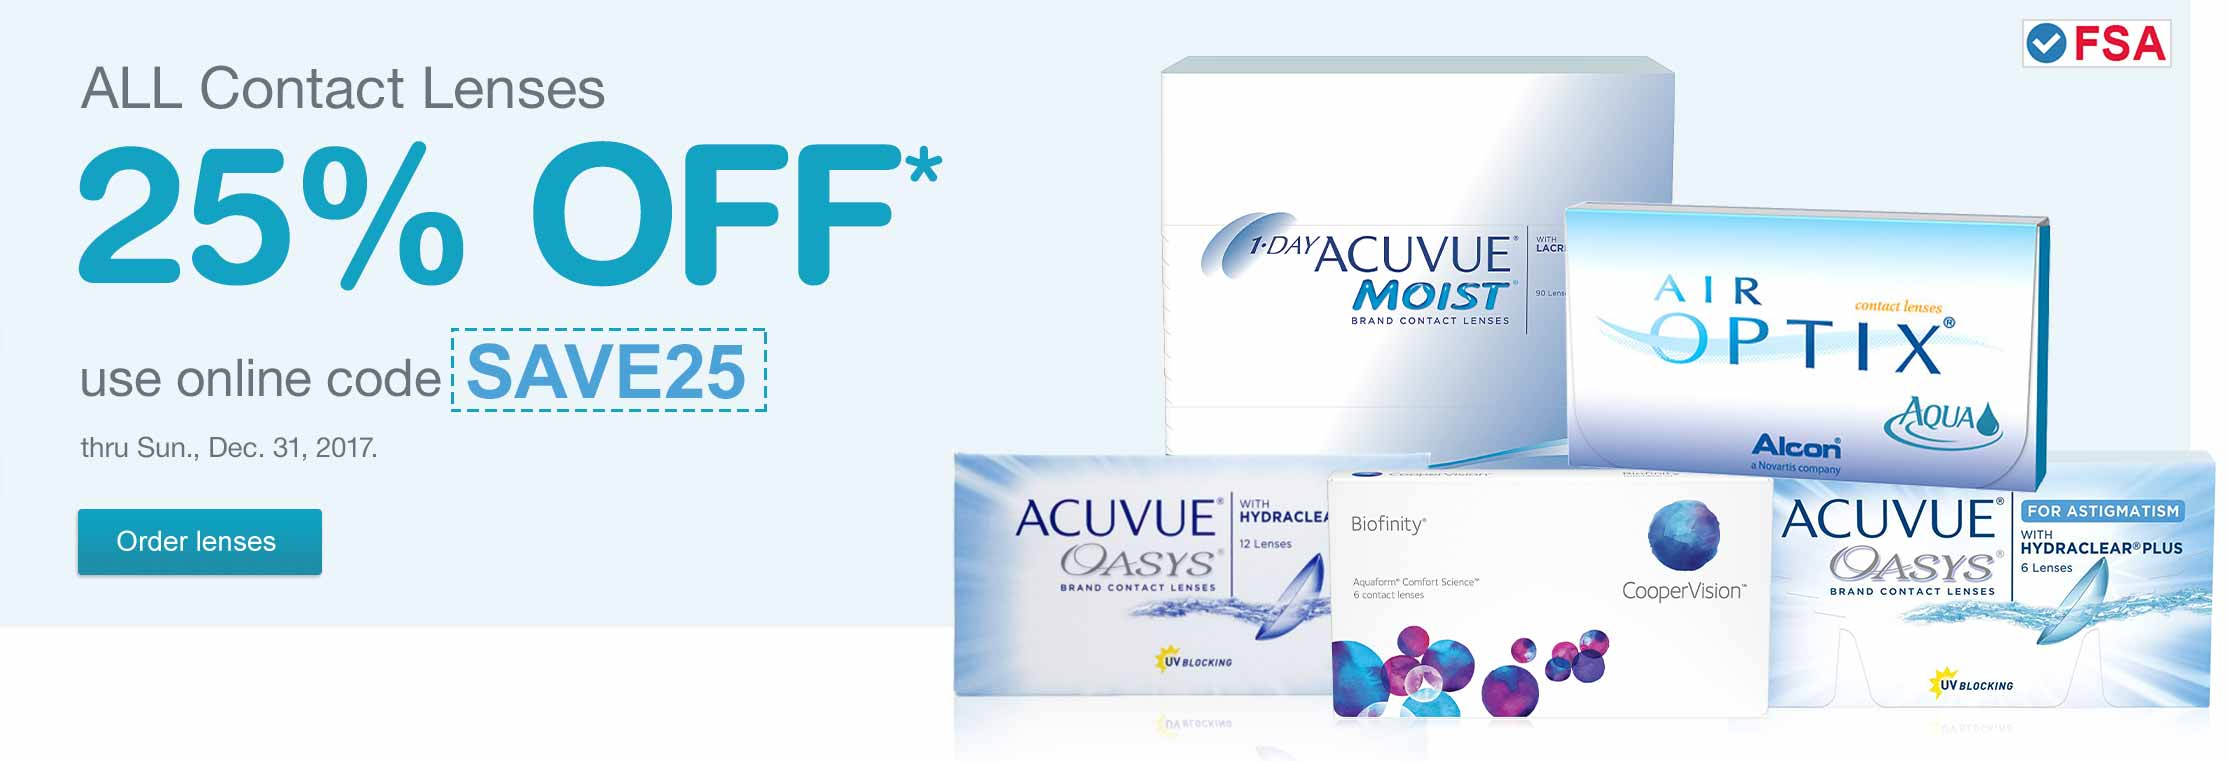 FSA Approved. All Contact Lenses 25% OFF.* Use online code SAVE25 thru Sun., Dec. 31, 2017. Order lenses.